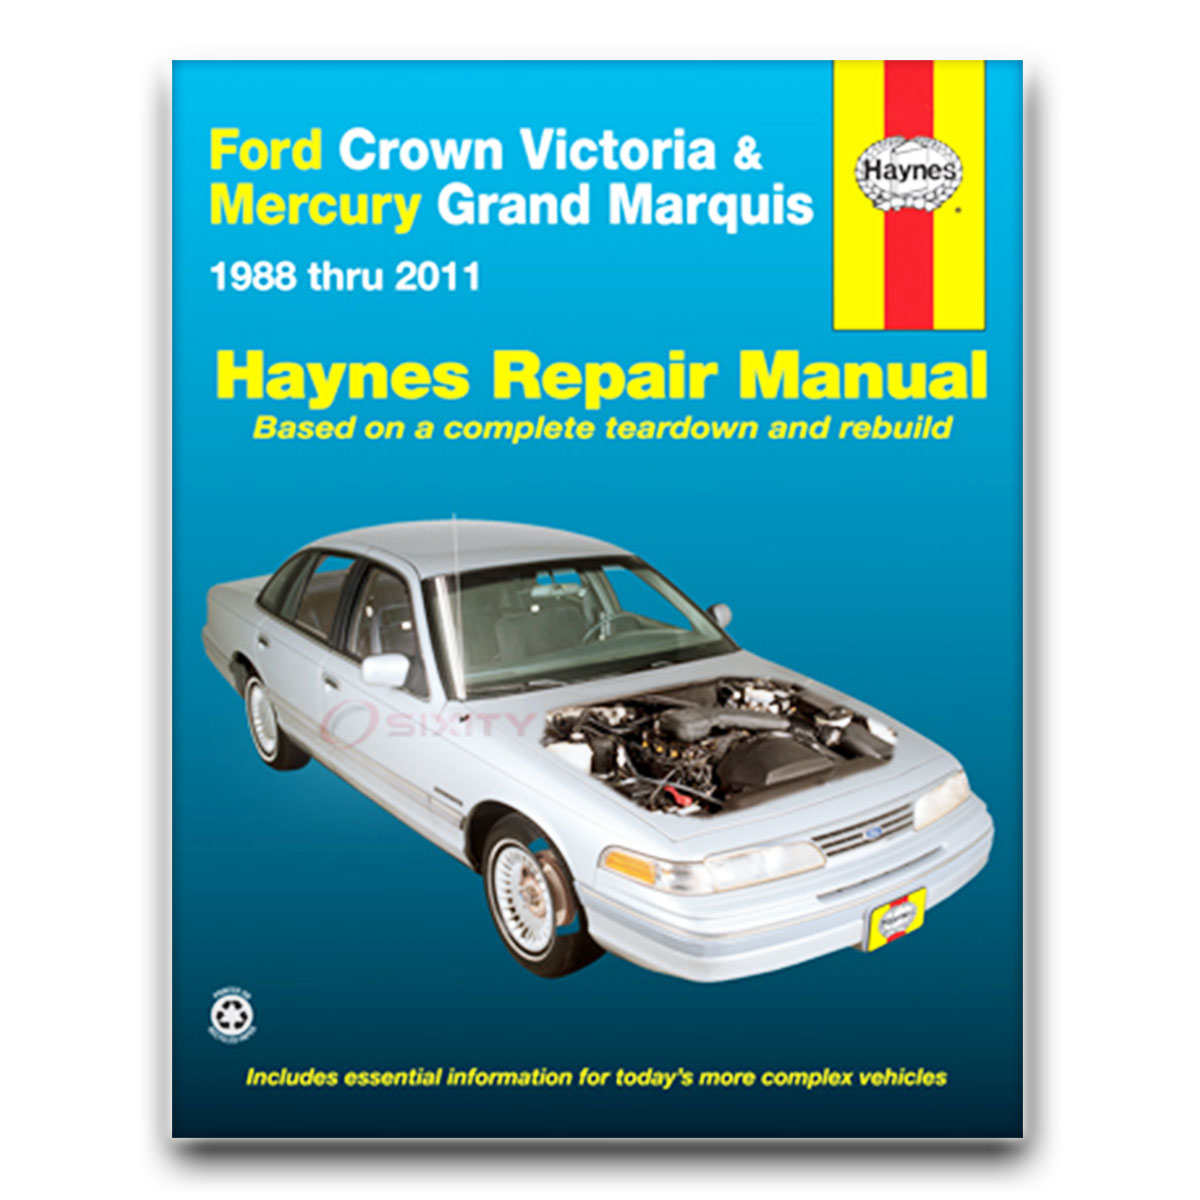 mercury grand marquis haynes repair manual ls gsl ultimate edition rh ebay com Custom Ford Crown Victoria Ford Crown Victoria Police Car